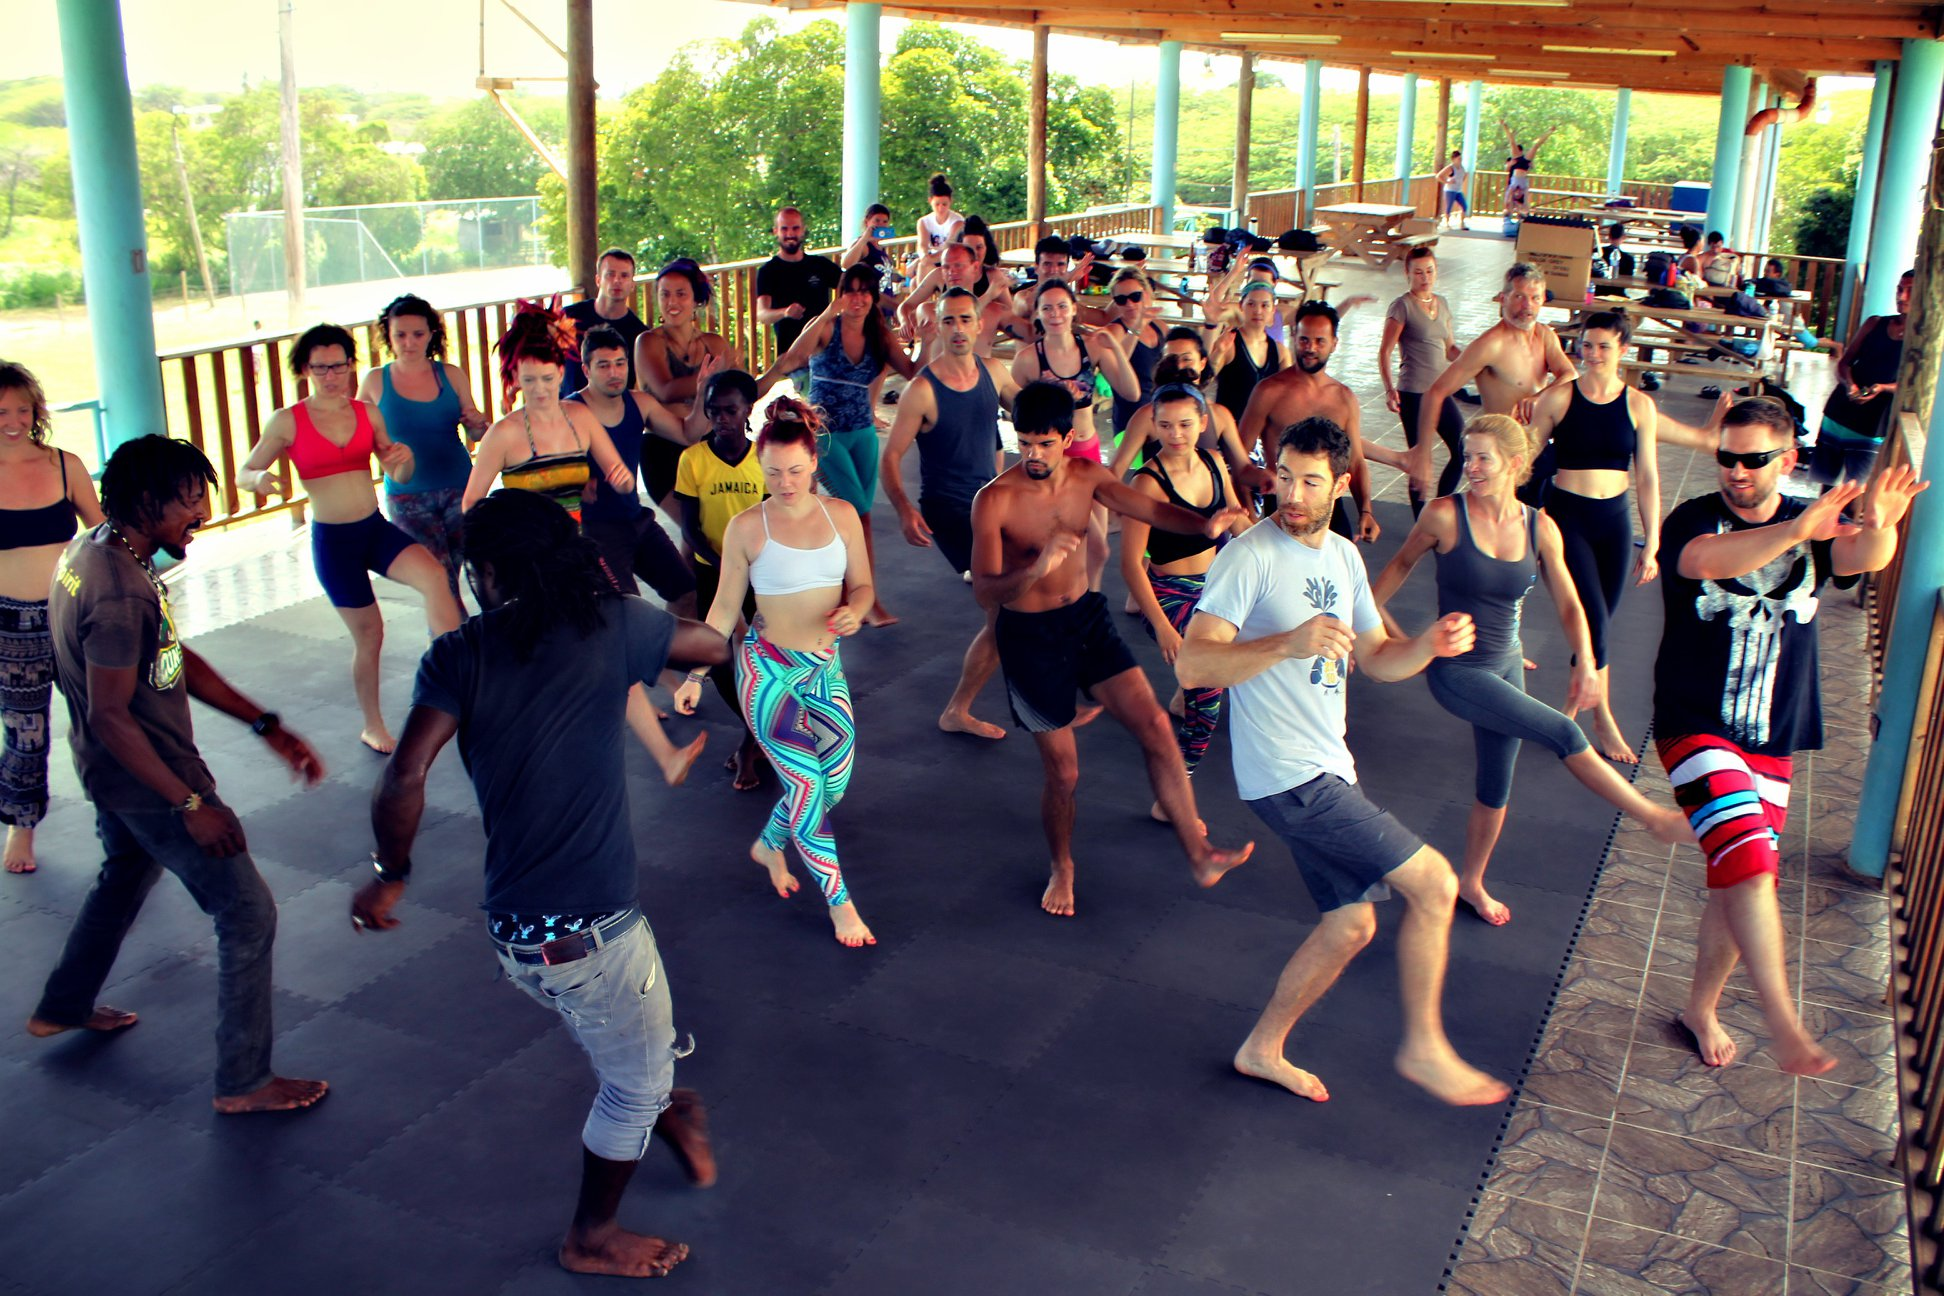 We taught the locals Acroyoga and they taught us Jamaican dancing!